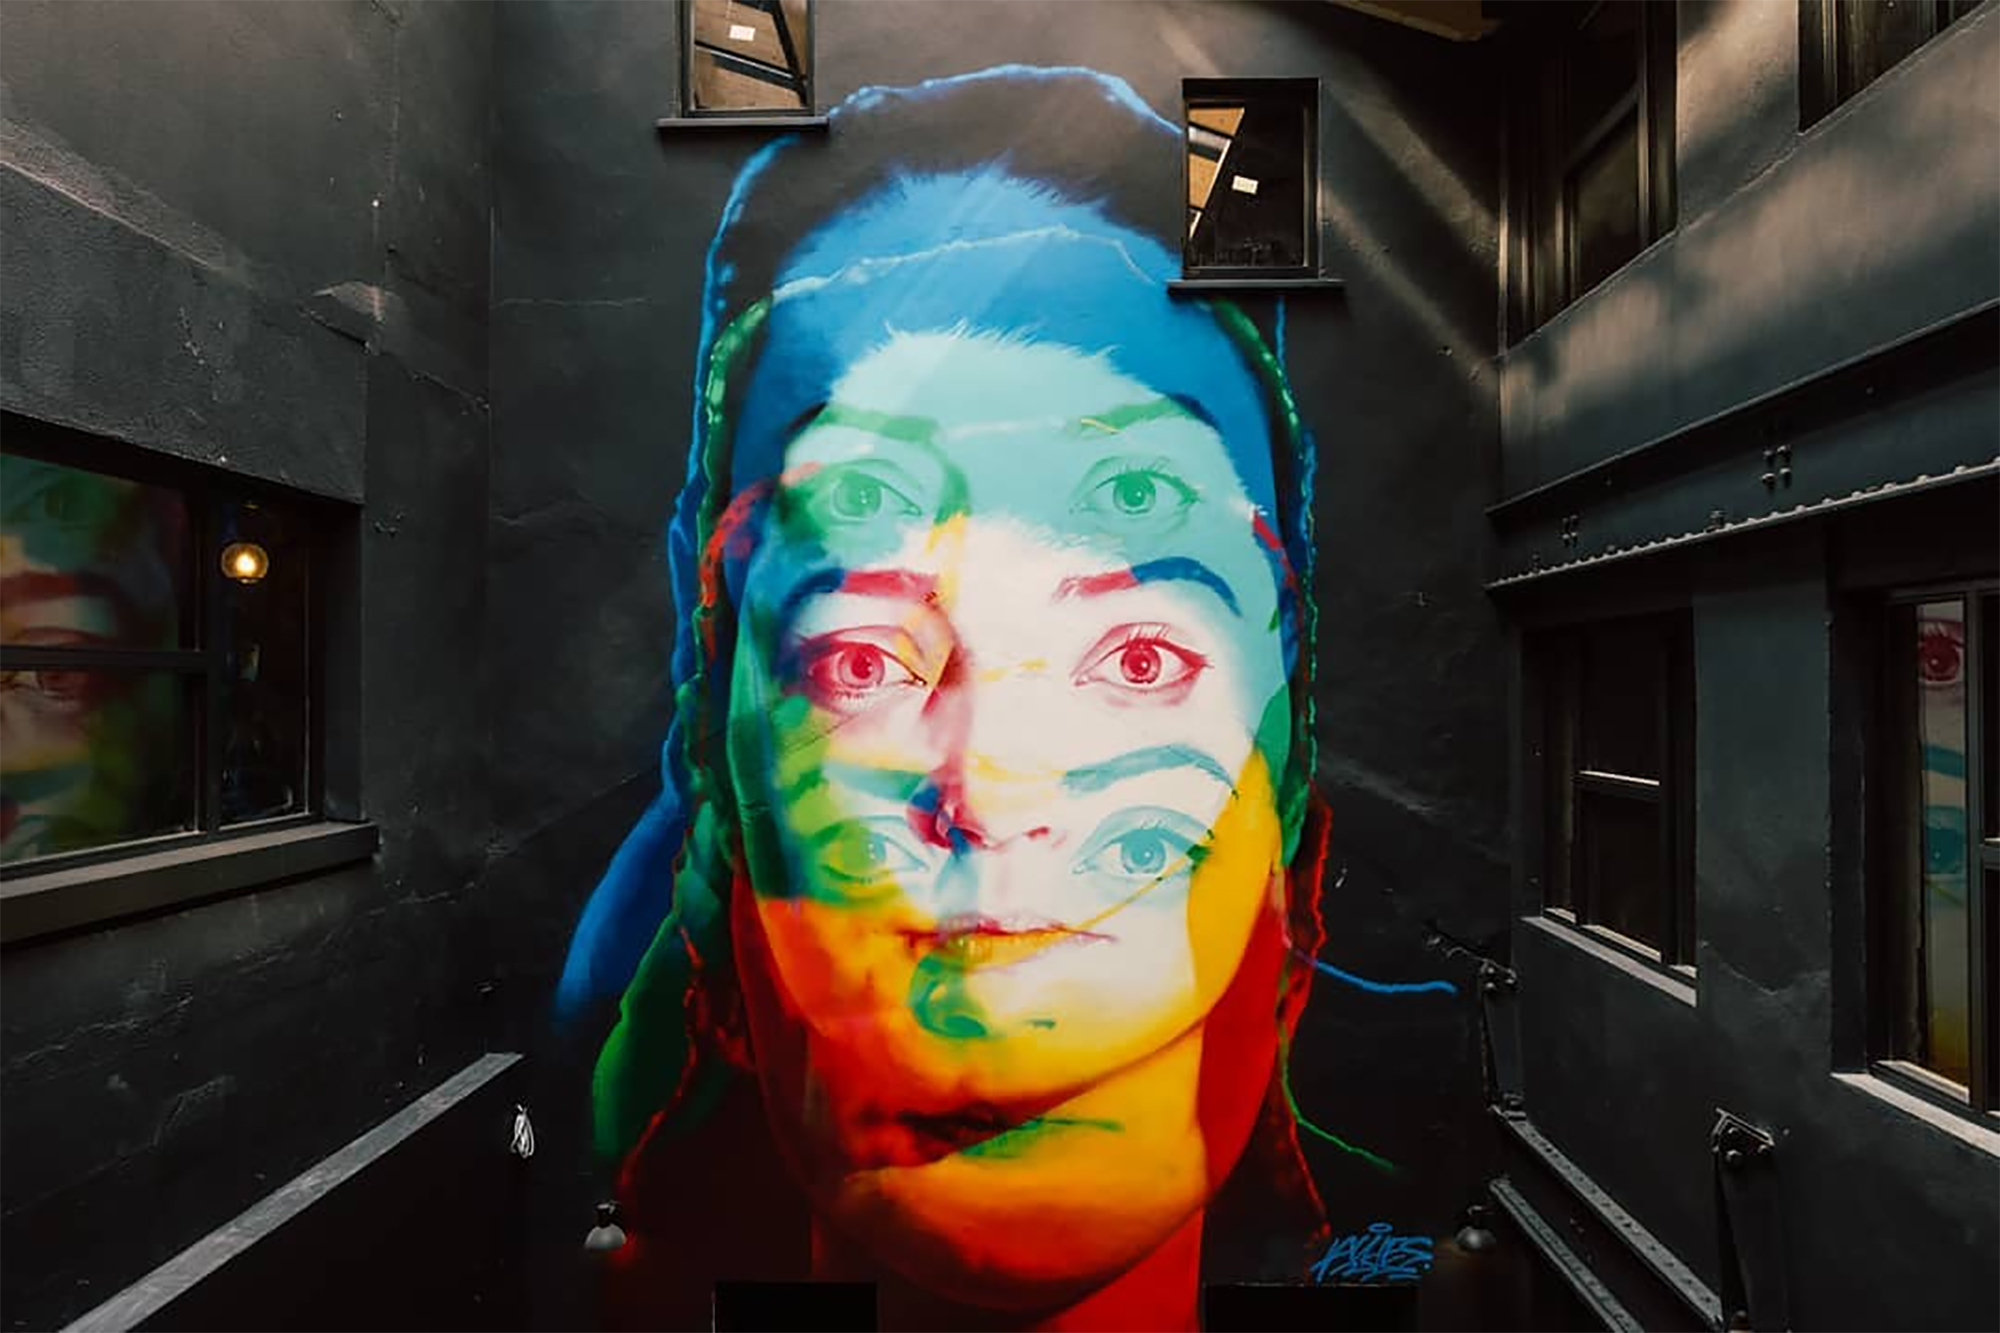 'Portrait', 2019, Spray Paint, Iconic Offices, Dublin. Photo Credit:  Iconic Offices